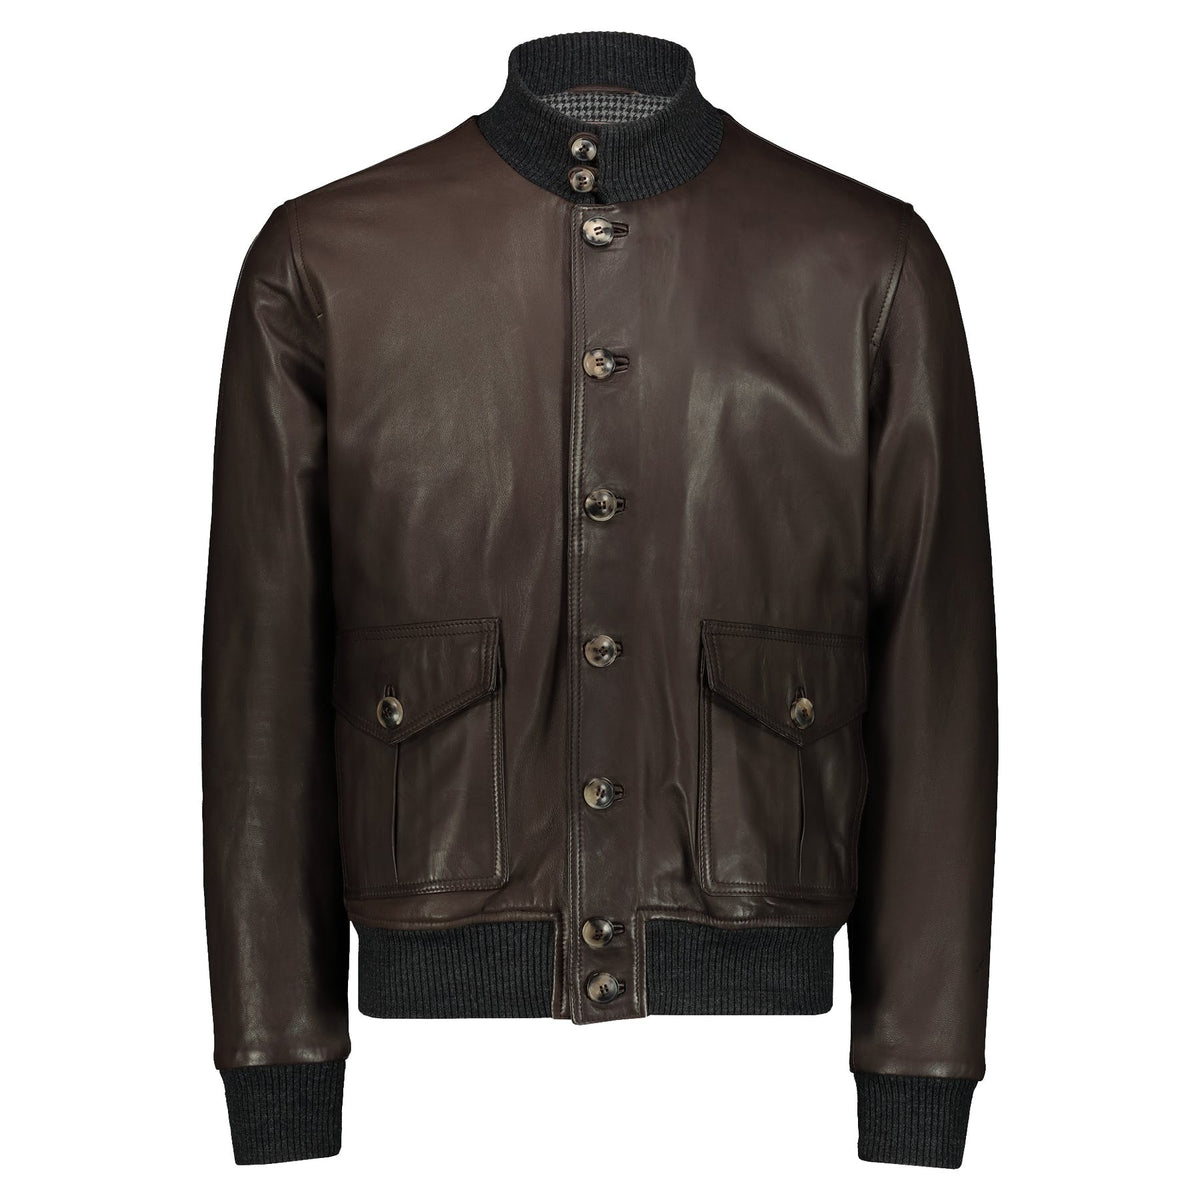 Atacama Brown natural lambskin Bomber Jacket